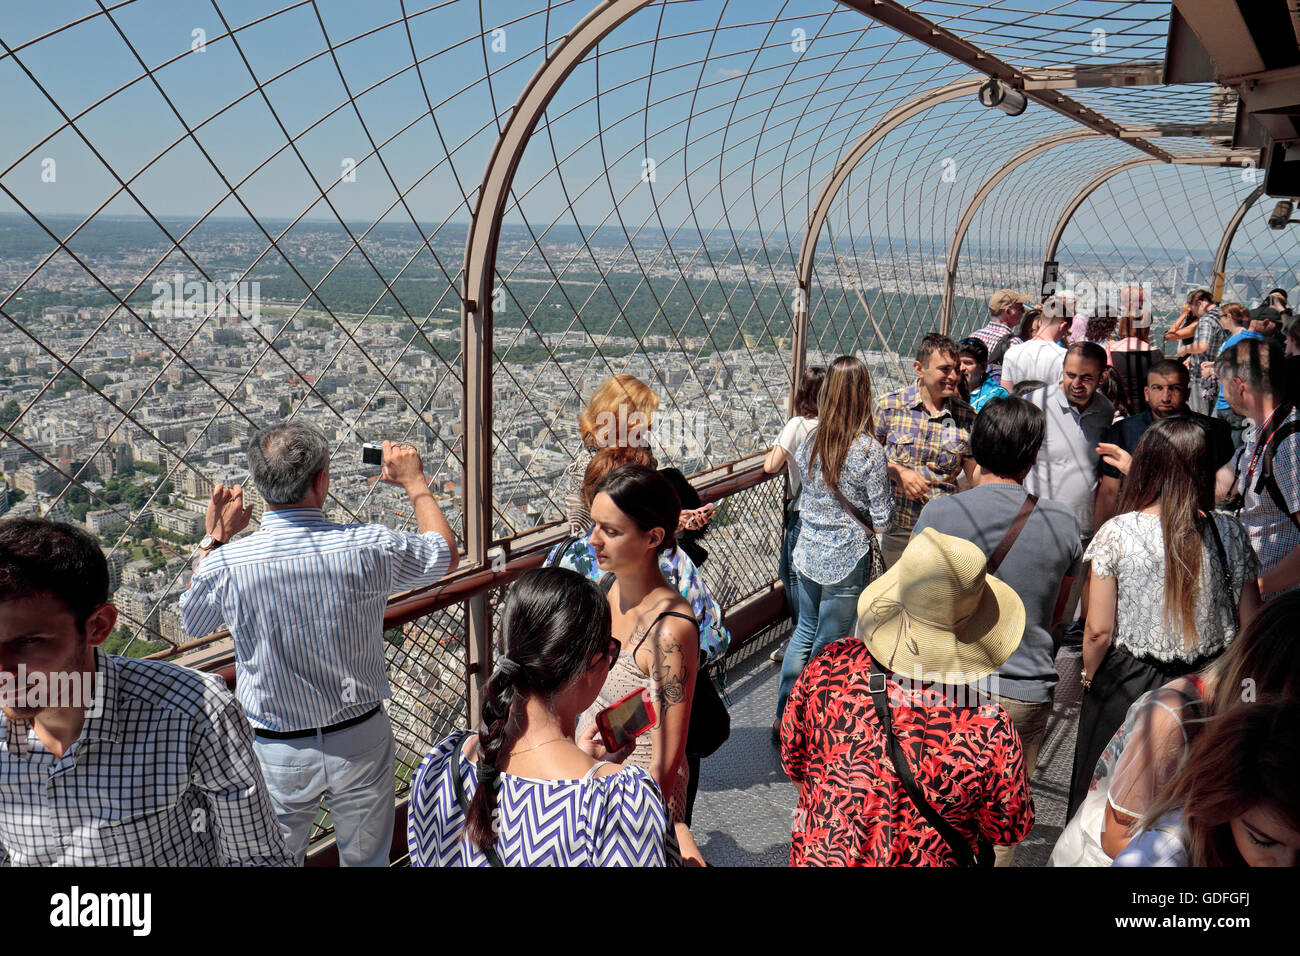 Tourists on the upper level walkway of the Eiffel Tower in Paris, France. Stock Photo